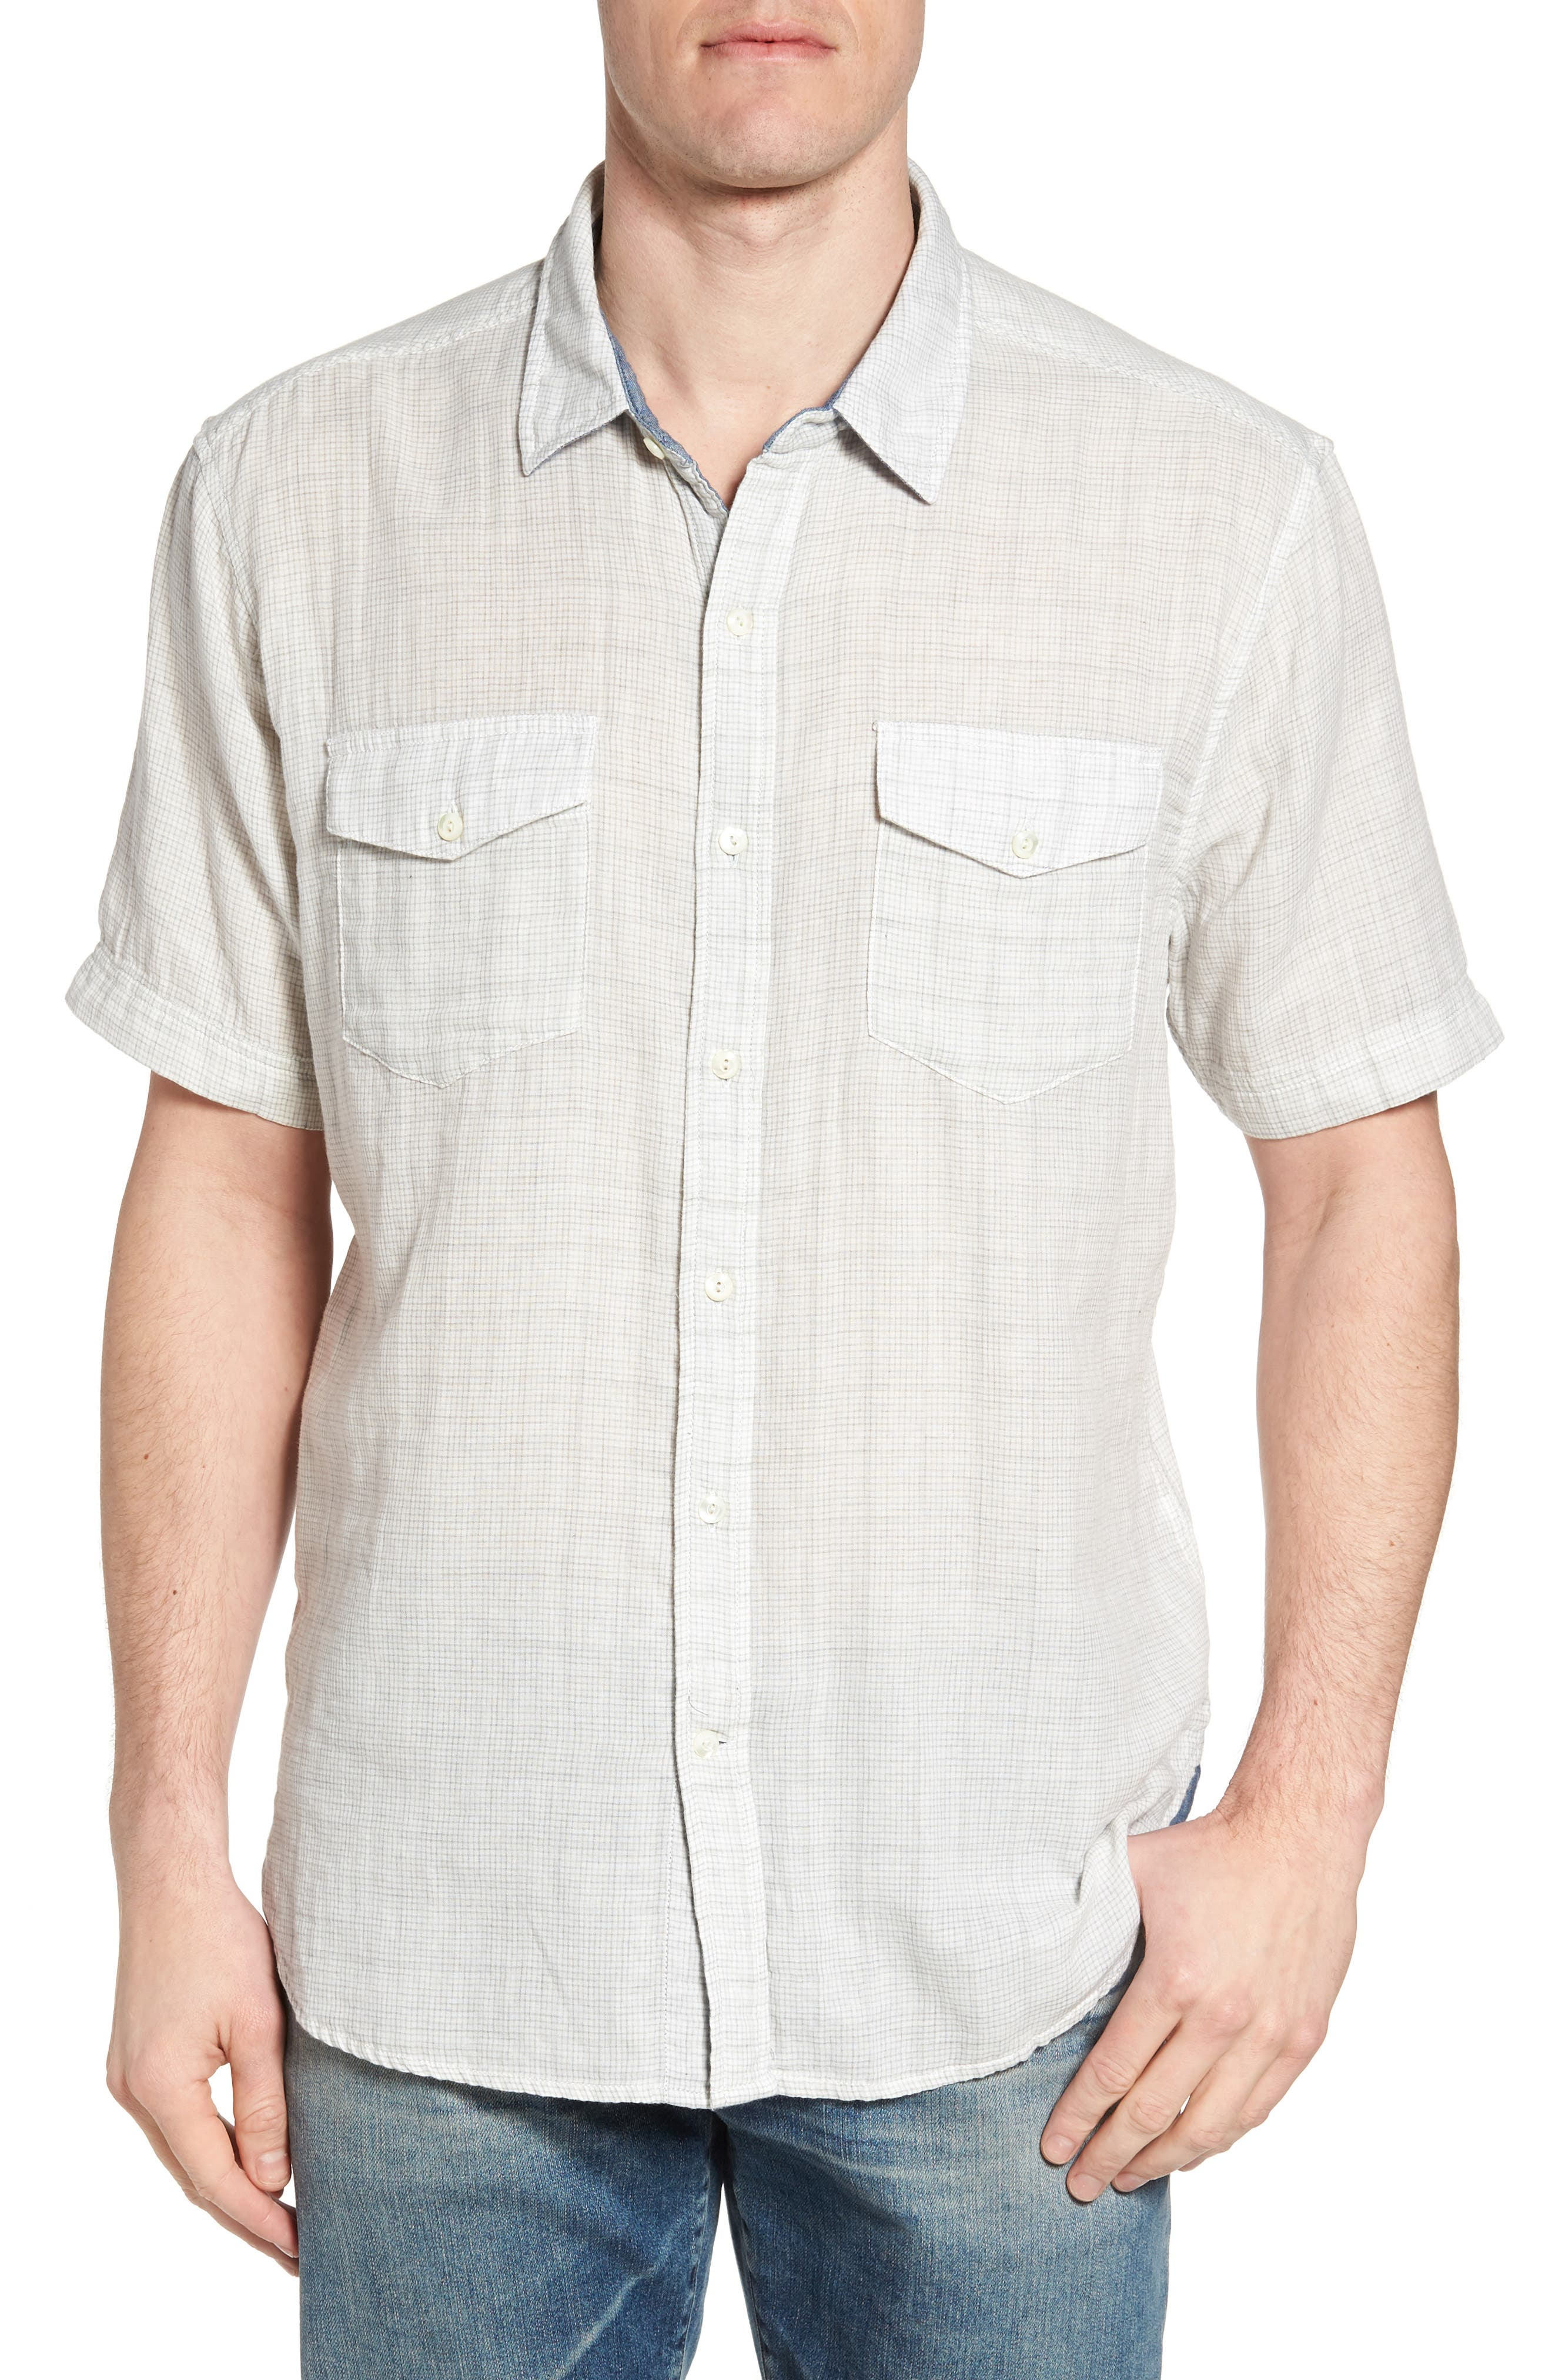 Crossroads Check Sport Shirt,                             Main thumbnail 1, color,                             020